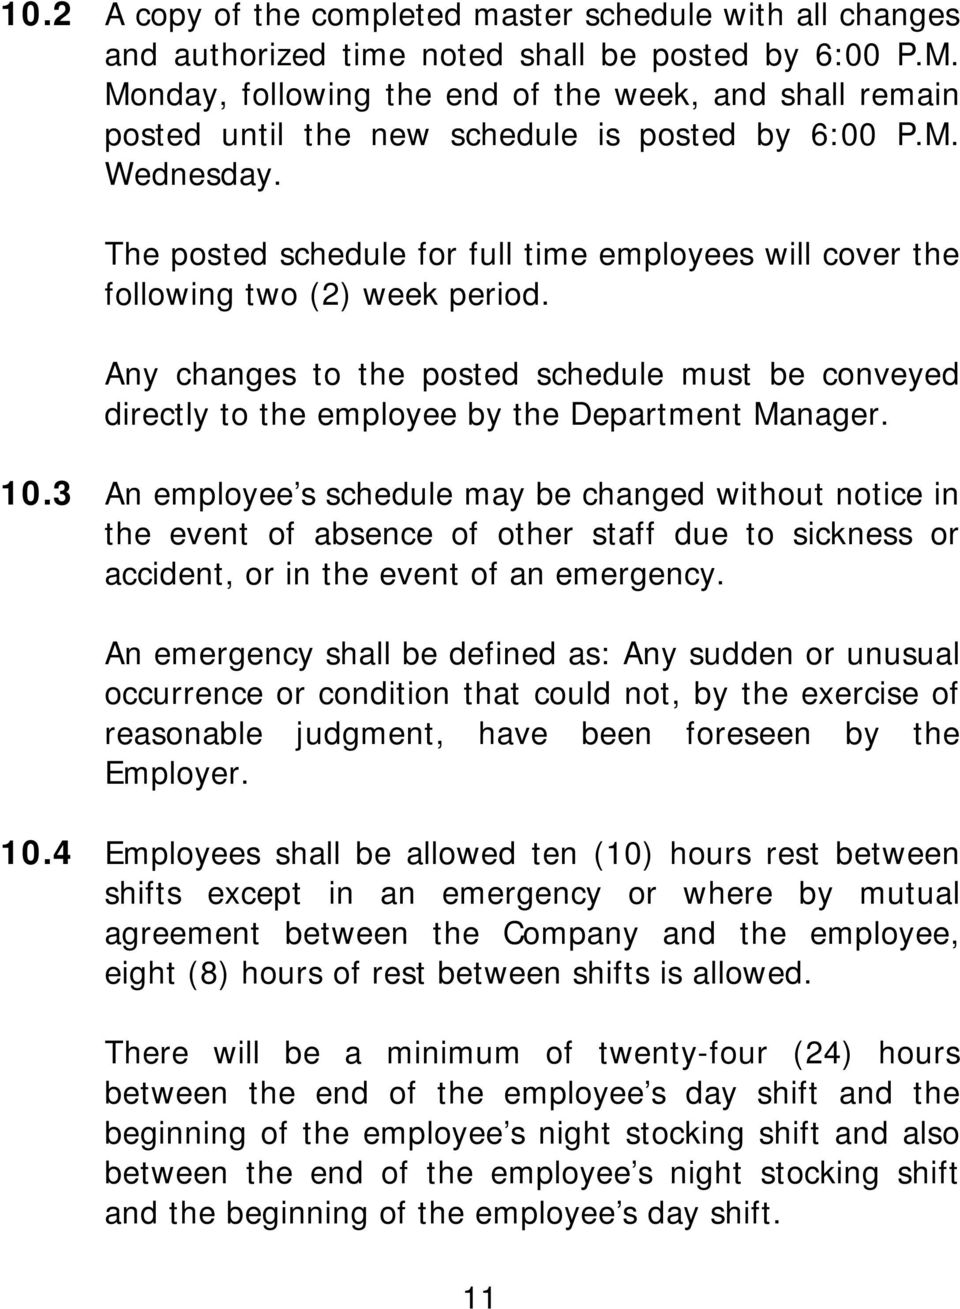 The posted schedule for full time employees will cover the following two (2) week period. Any changes to the posted schedule must be conveyed directly to the employee by the Department Manager. 10.